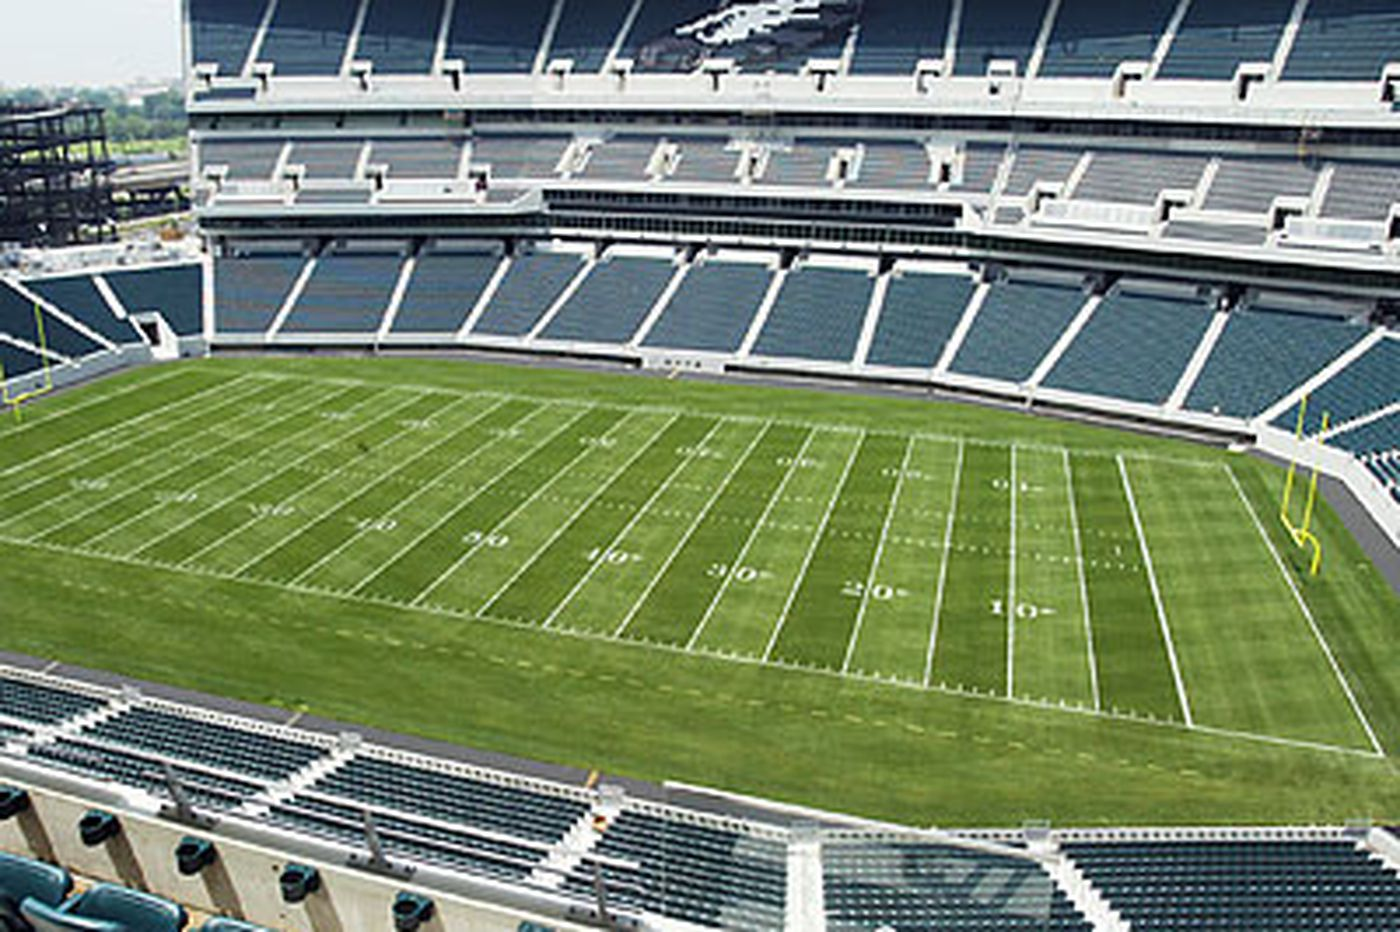 Eagles confirm report that they're eyeing $60M in renovations to Linc